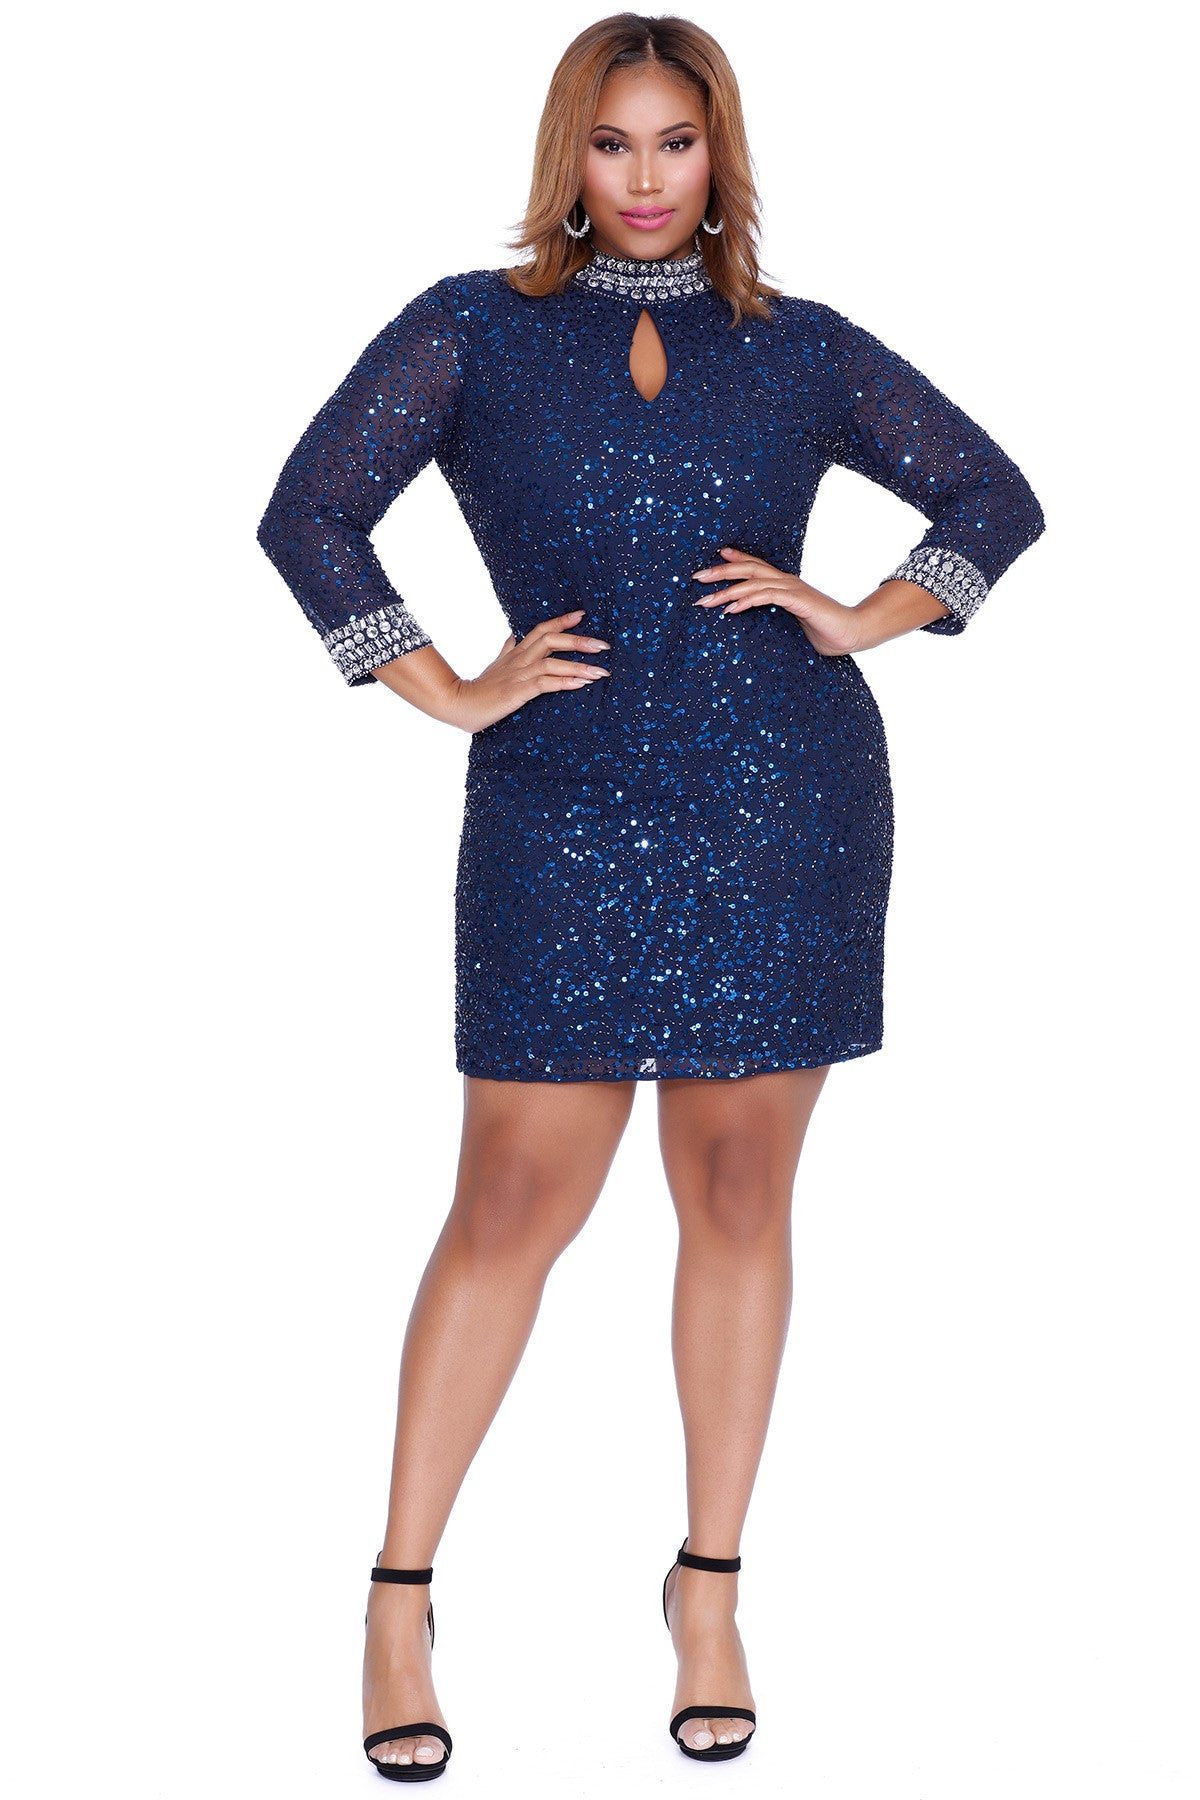 Brilliant Nights Navy Cocktail Dress